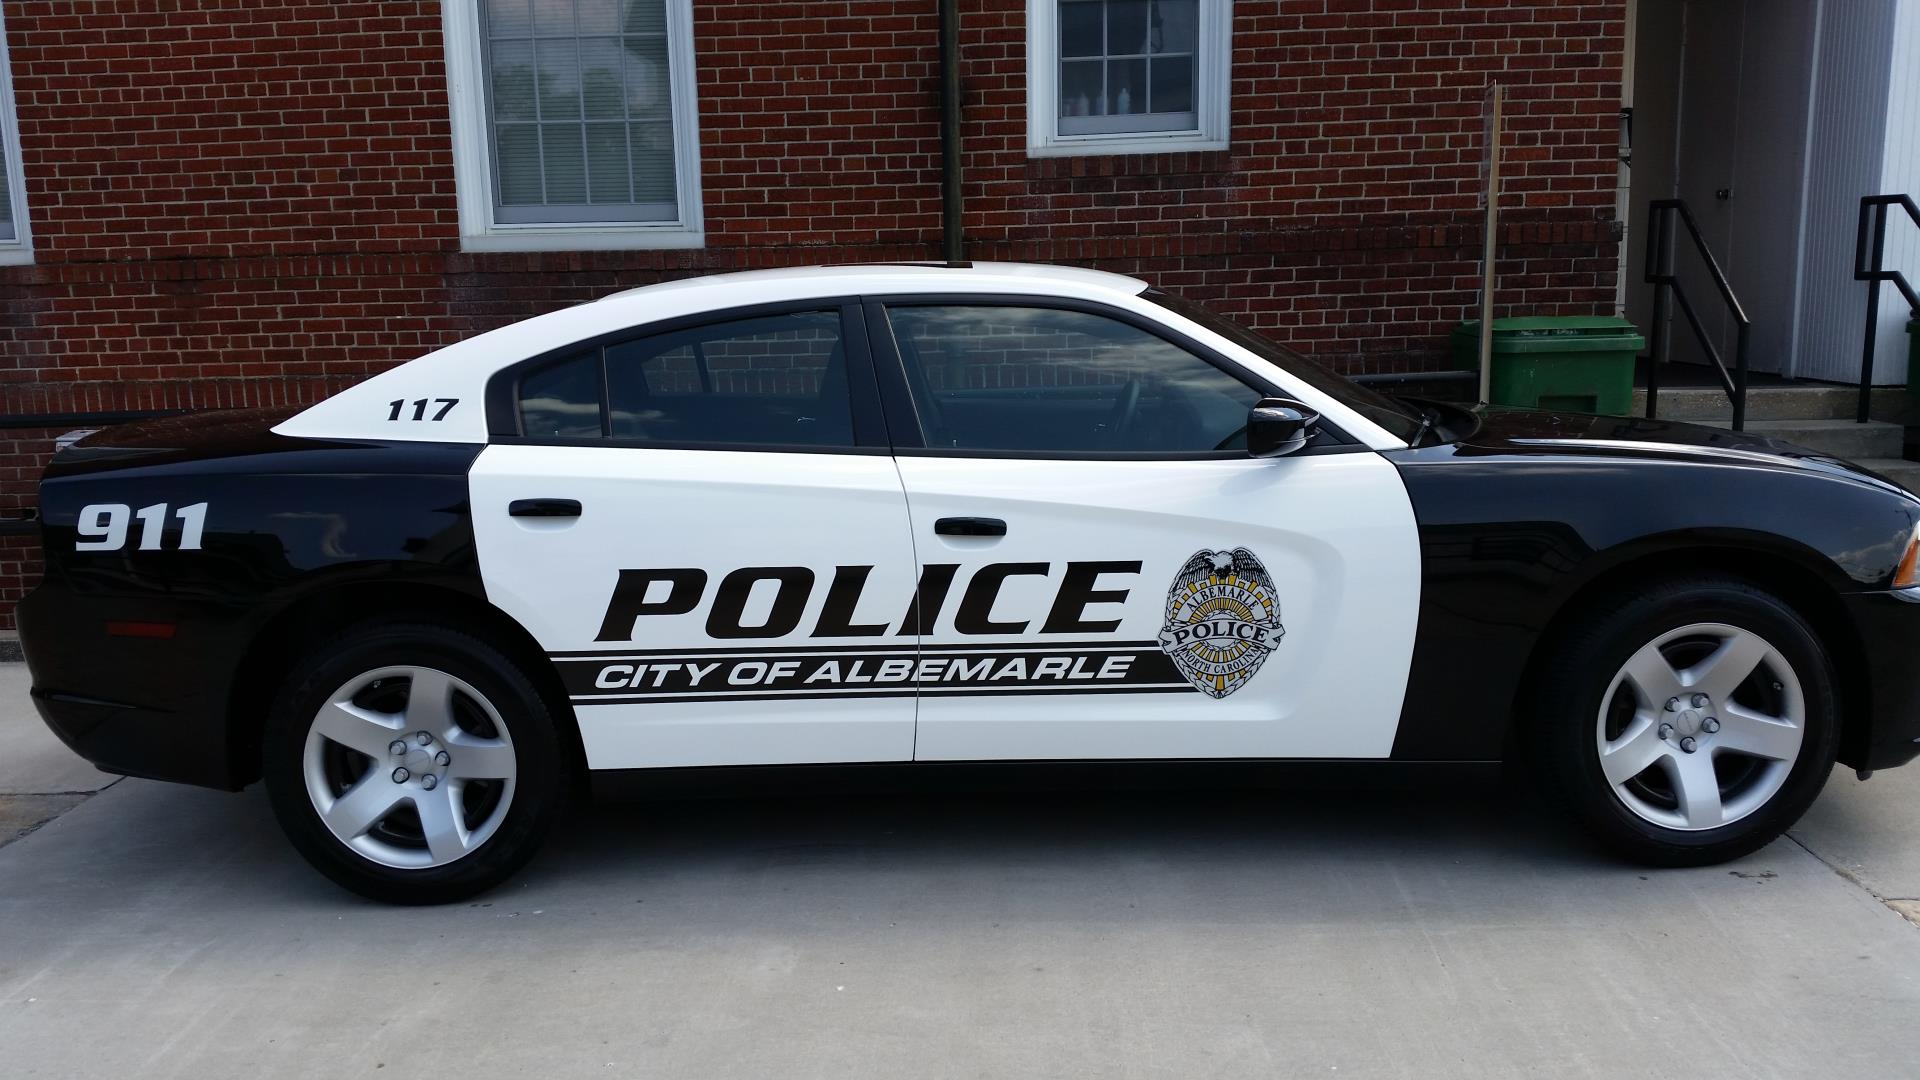 Divisions | Albemarle, NC on police go kart, police atv, police equipment gear, police car, police ambulance, police truck, police motorcycle, police boat, police lights, police four wheelers, police utv, police pool,